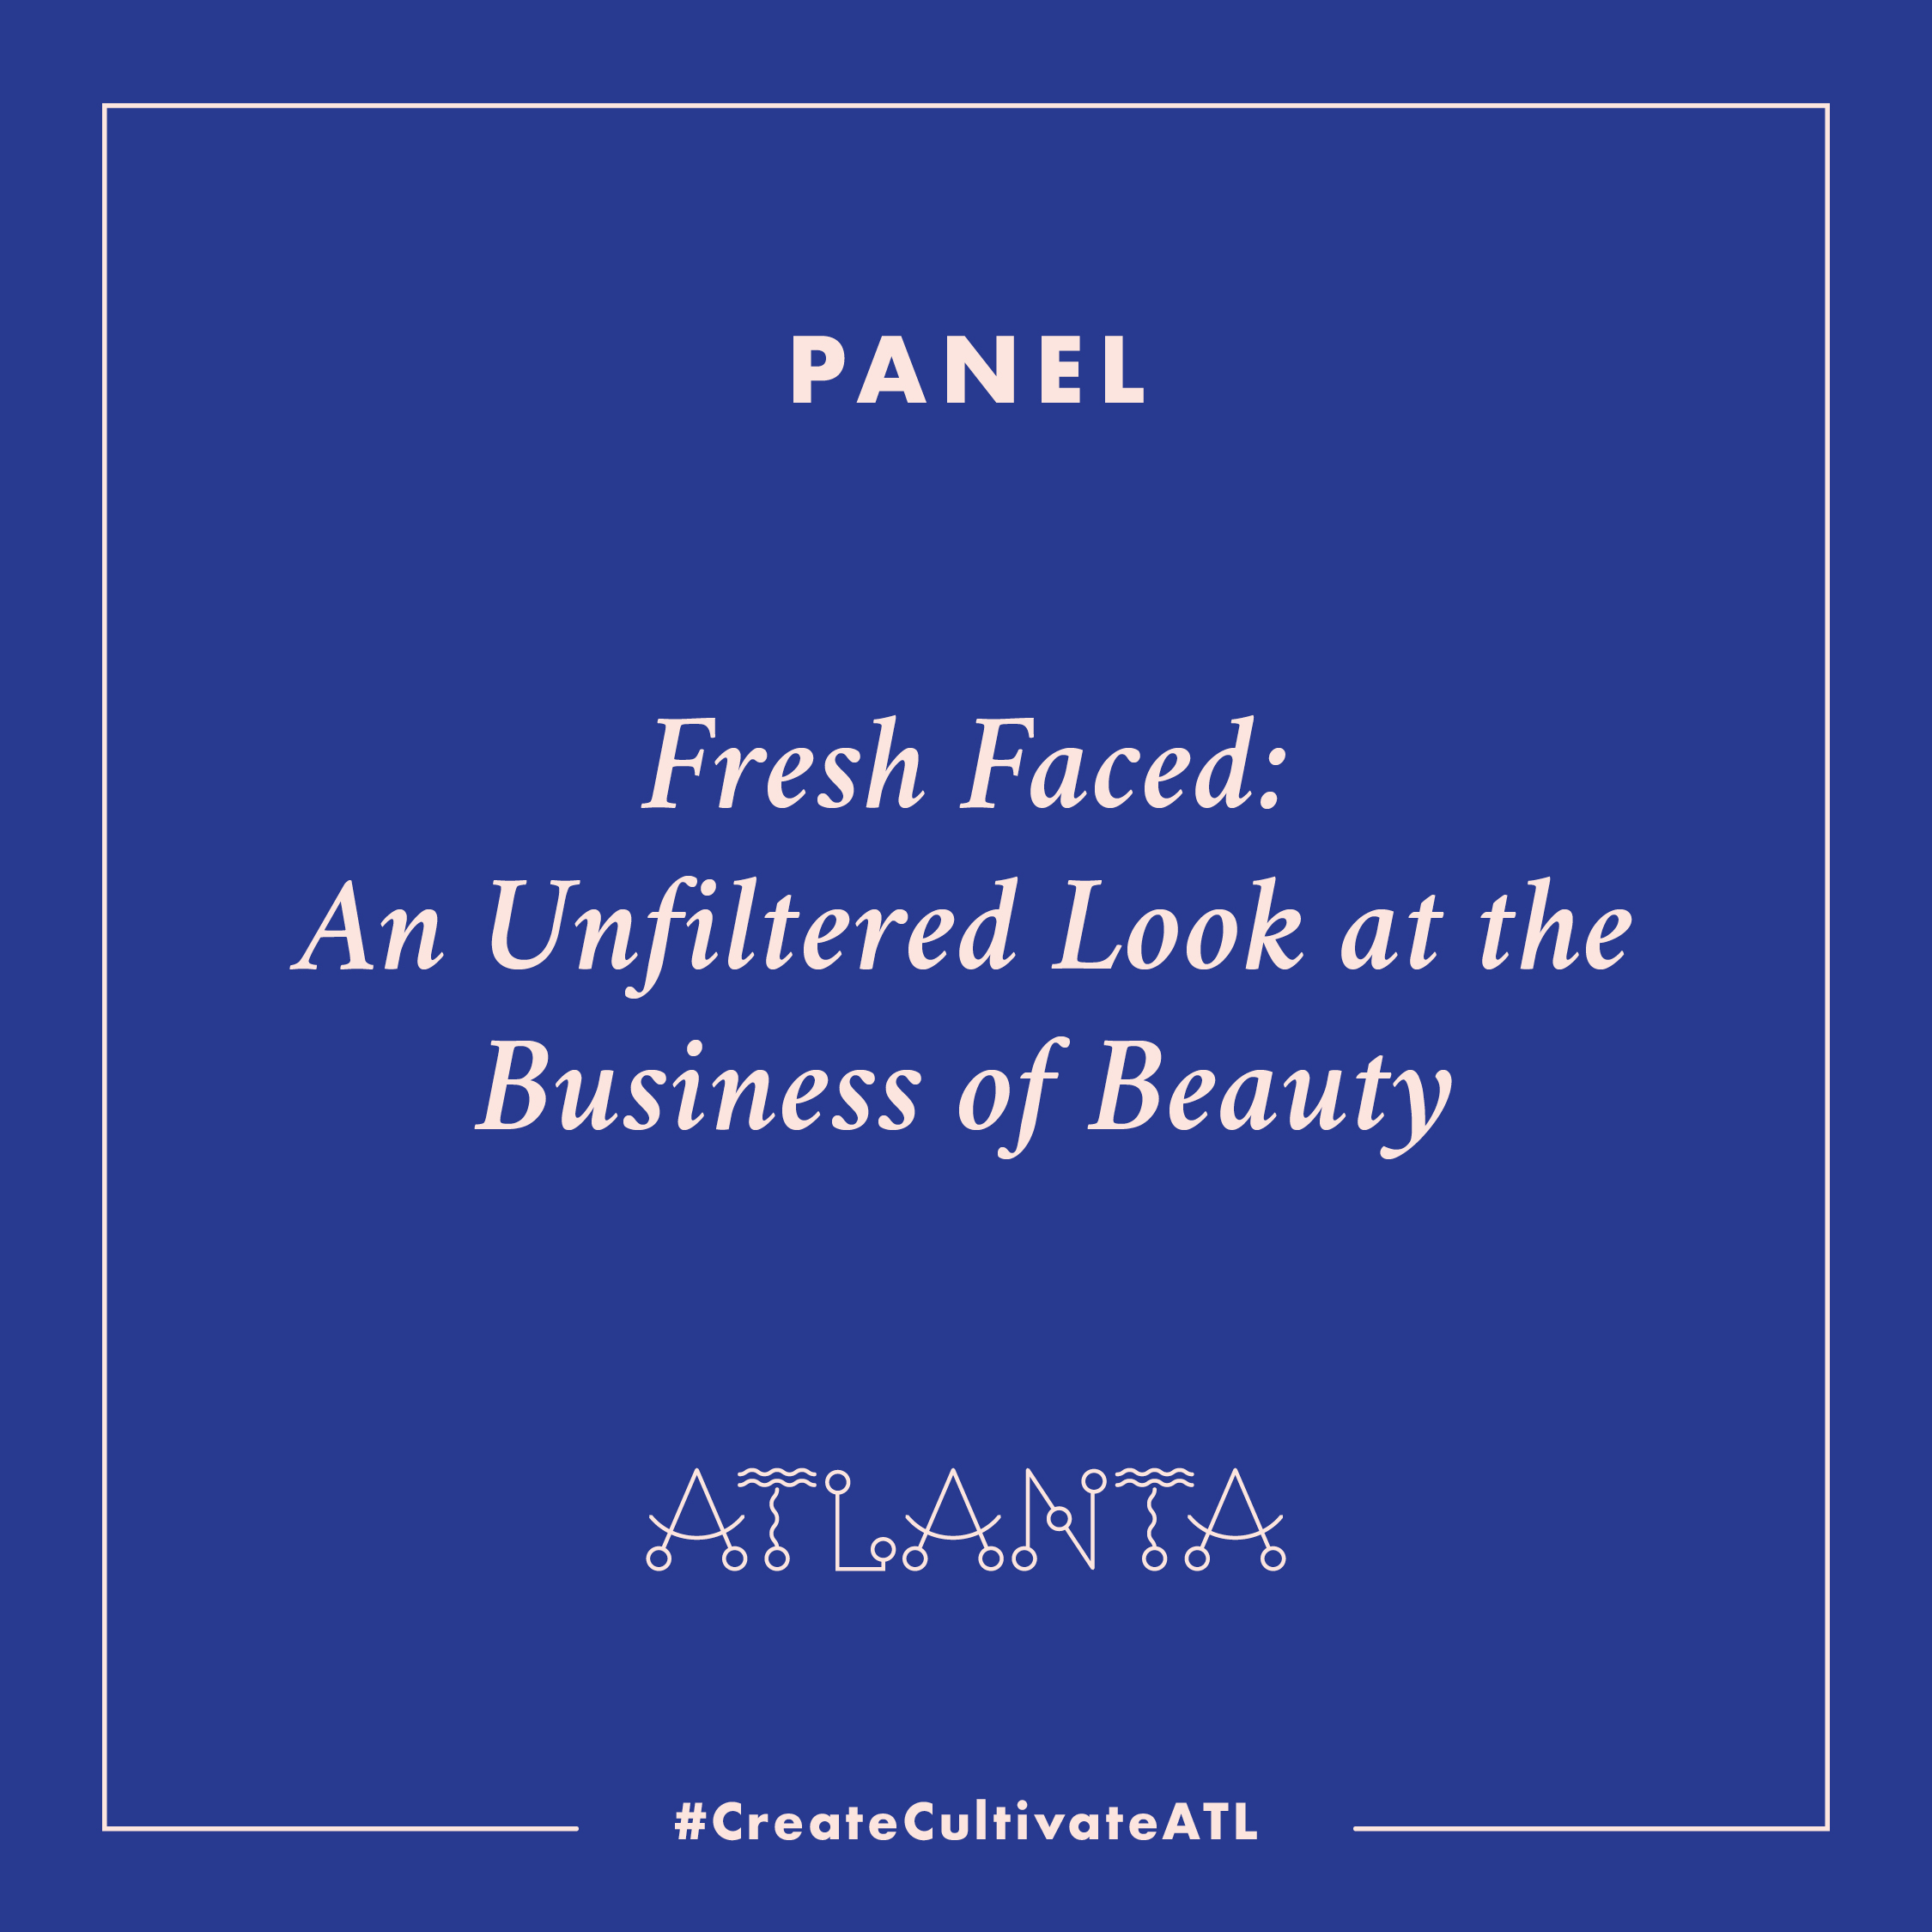 Create-and-Cultivate-social-media-graphic_PANEL-blue.jpg